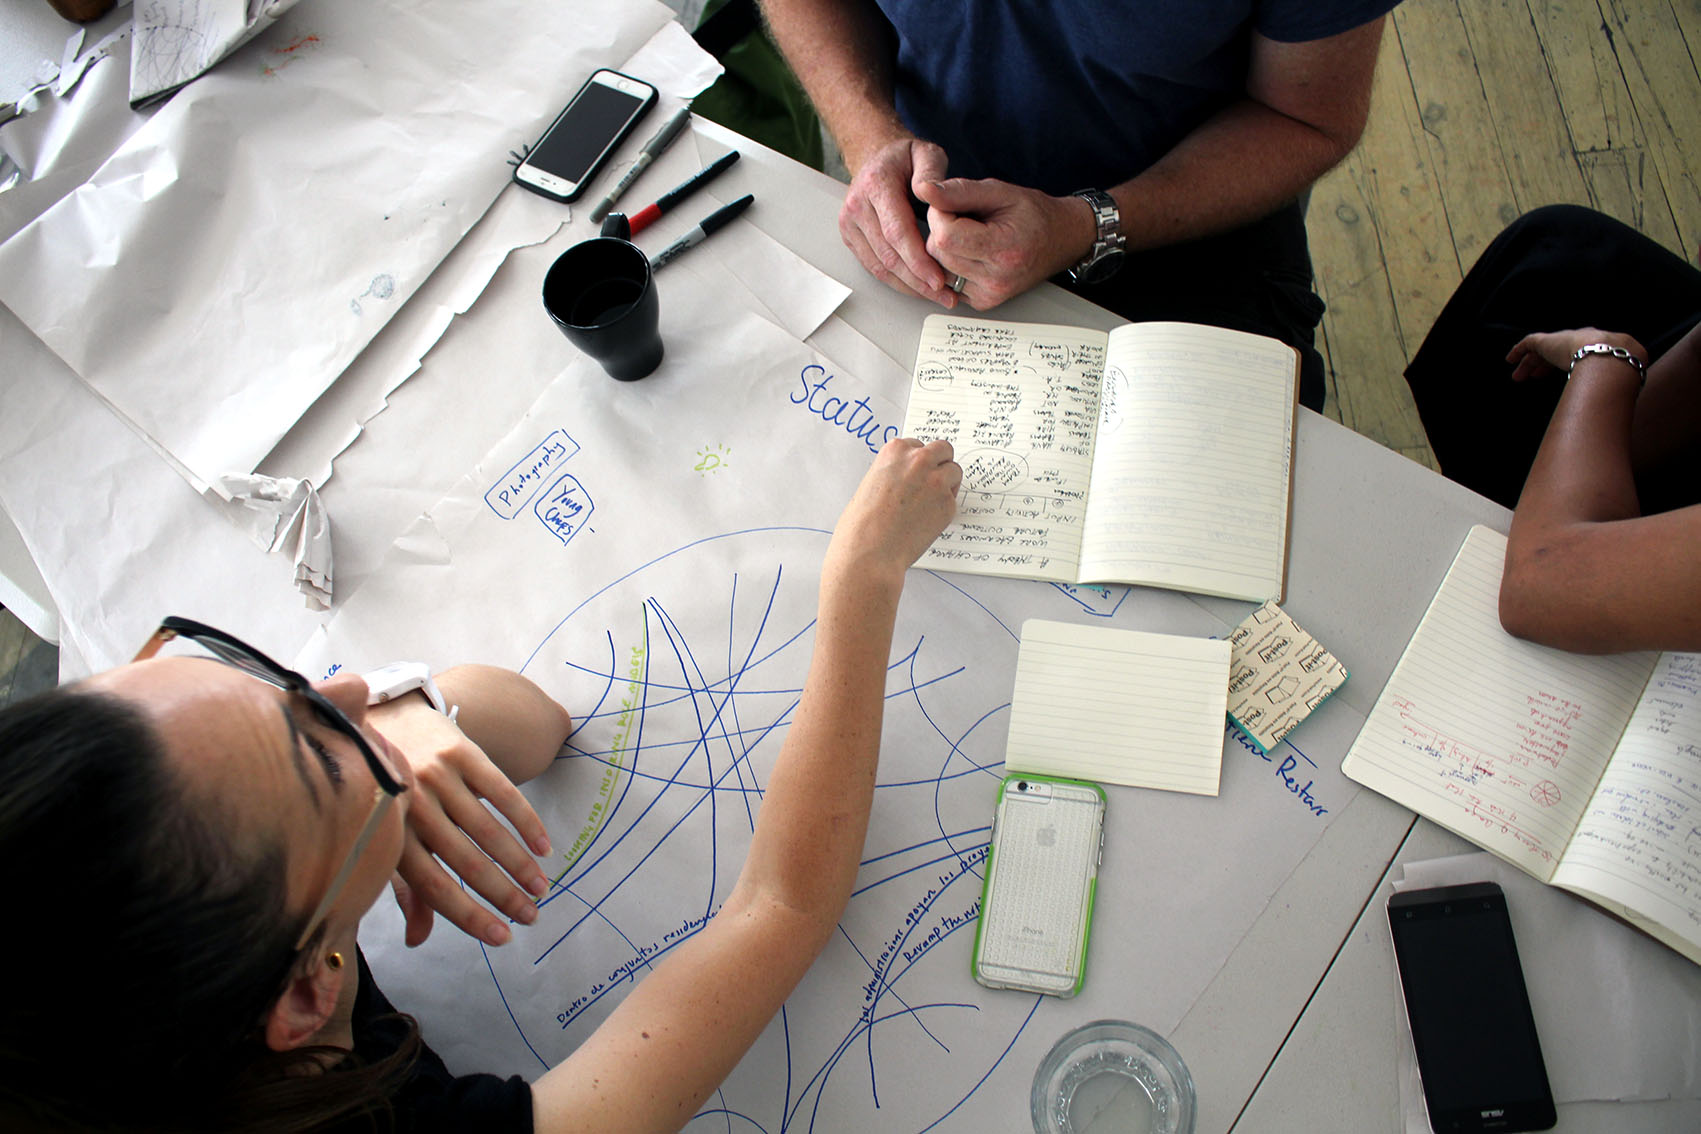 The Disrutpive Design Method - After years of exploring creative change making, Leyla developed the Disruptive Design Method for activating positive social and environmental change combining systems thinking, sustainability sciences and design thinking for positive impact on the planet.